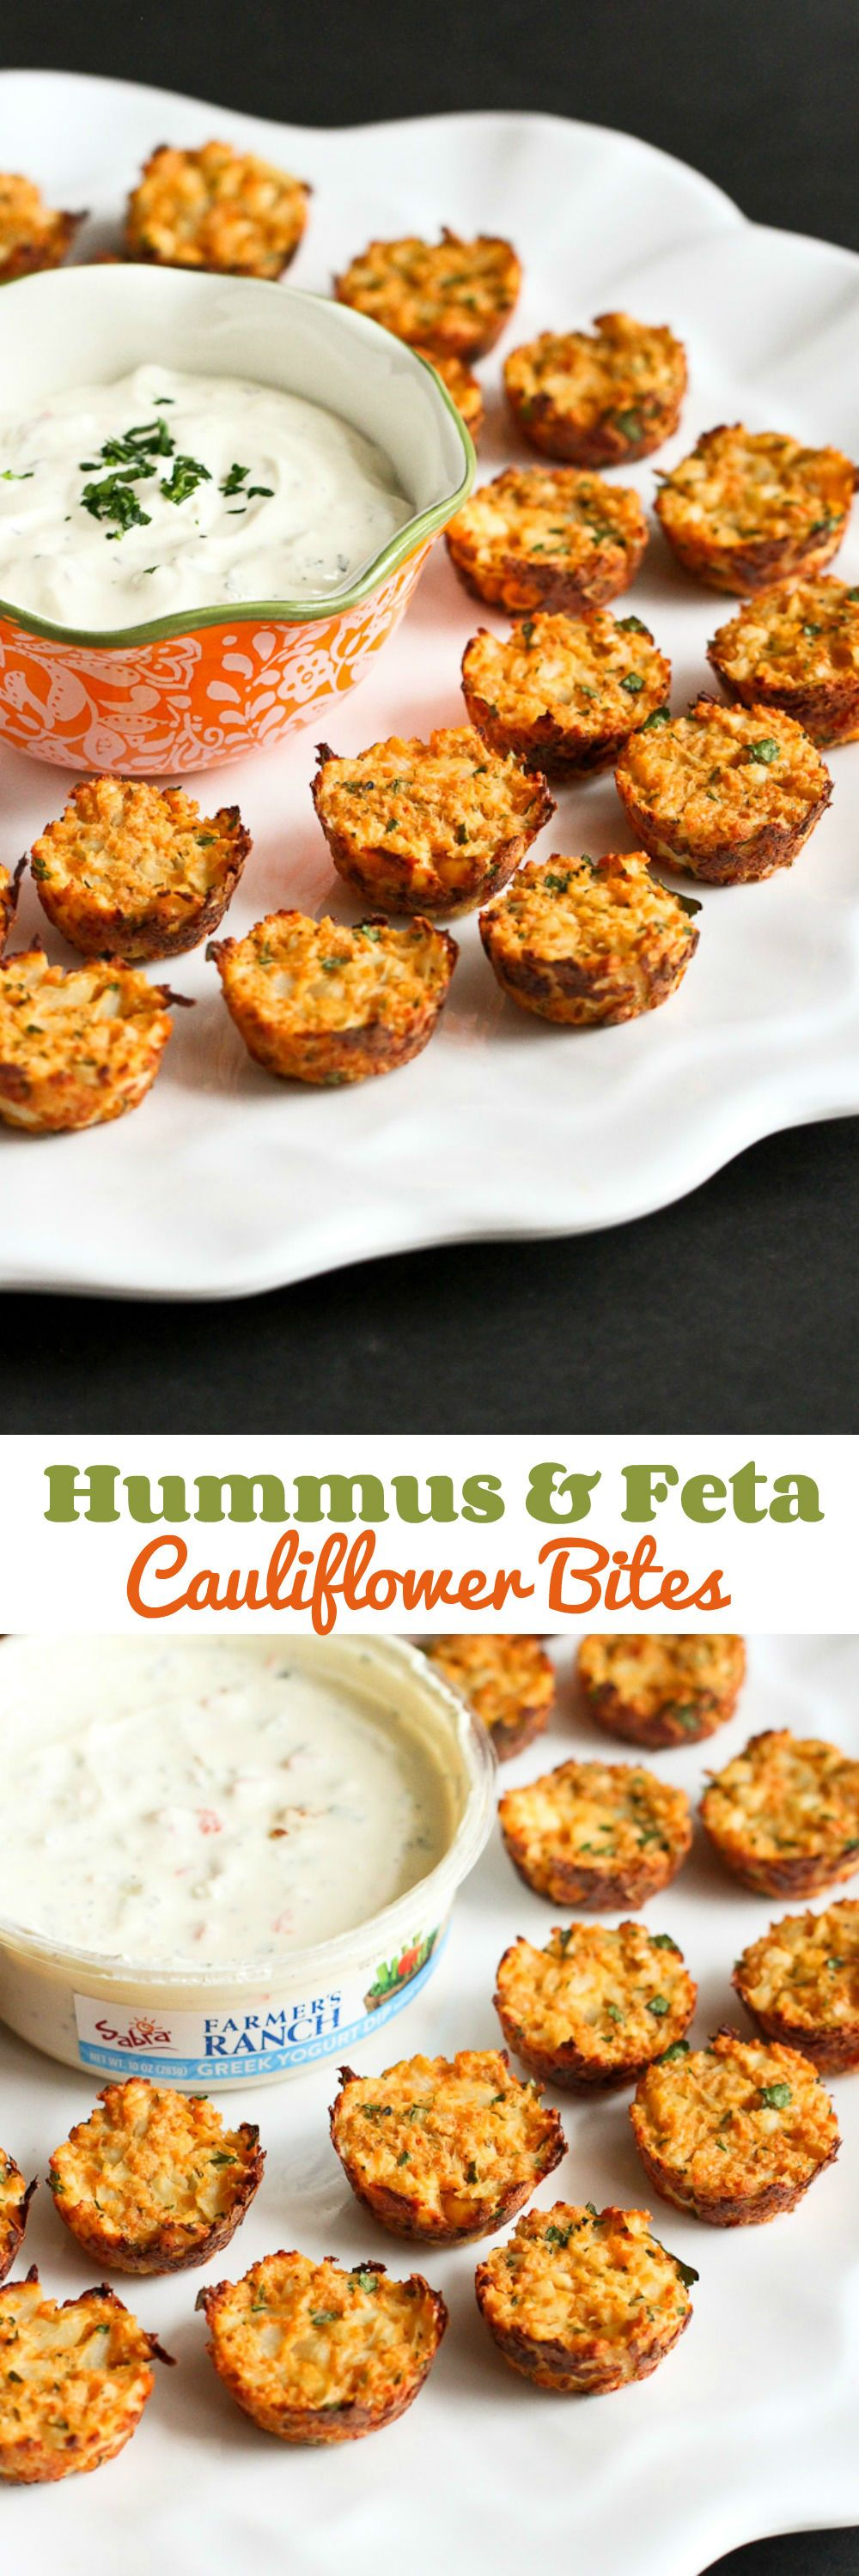 Baked Cauliflower Bites with Hummus & Feta - Healthy Appetizer Recipe